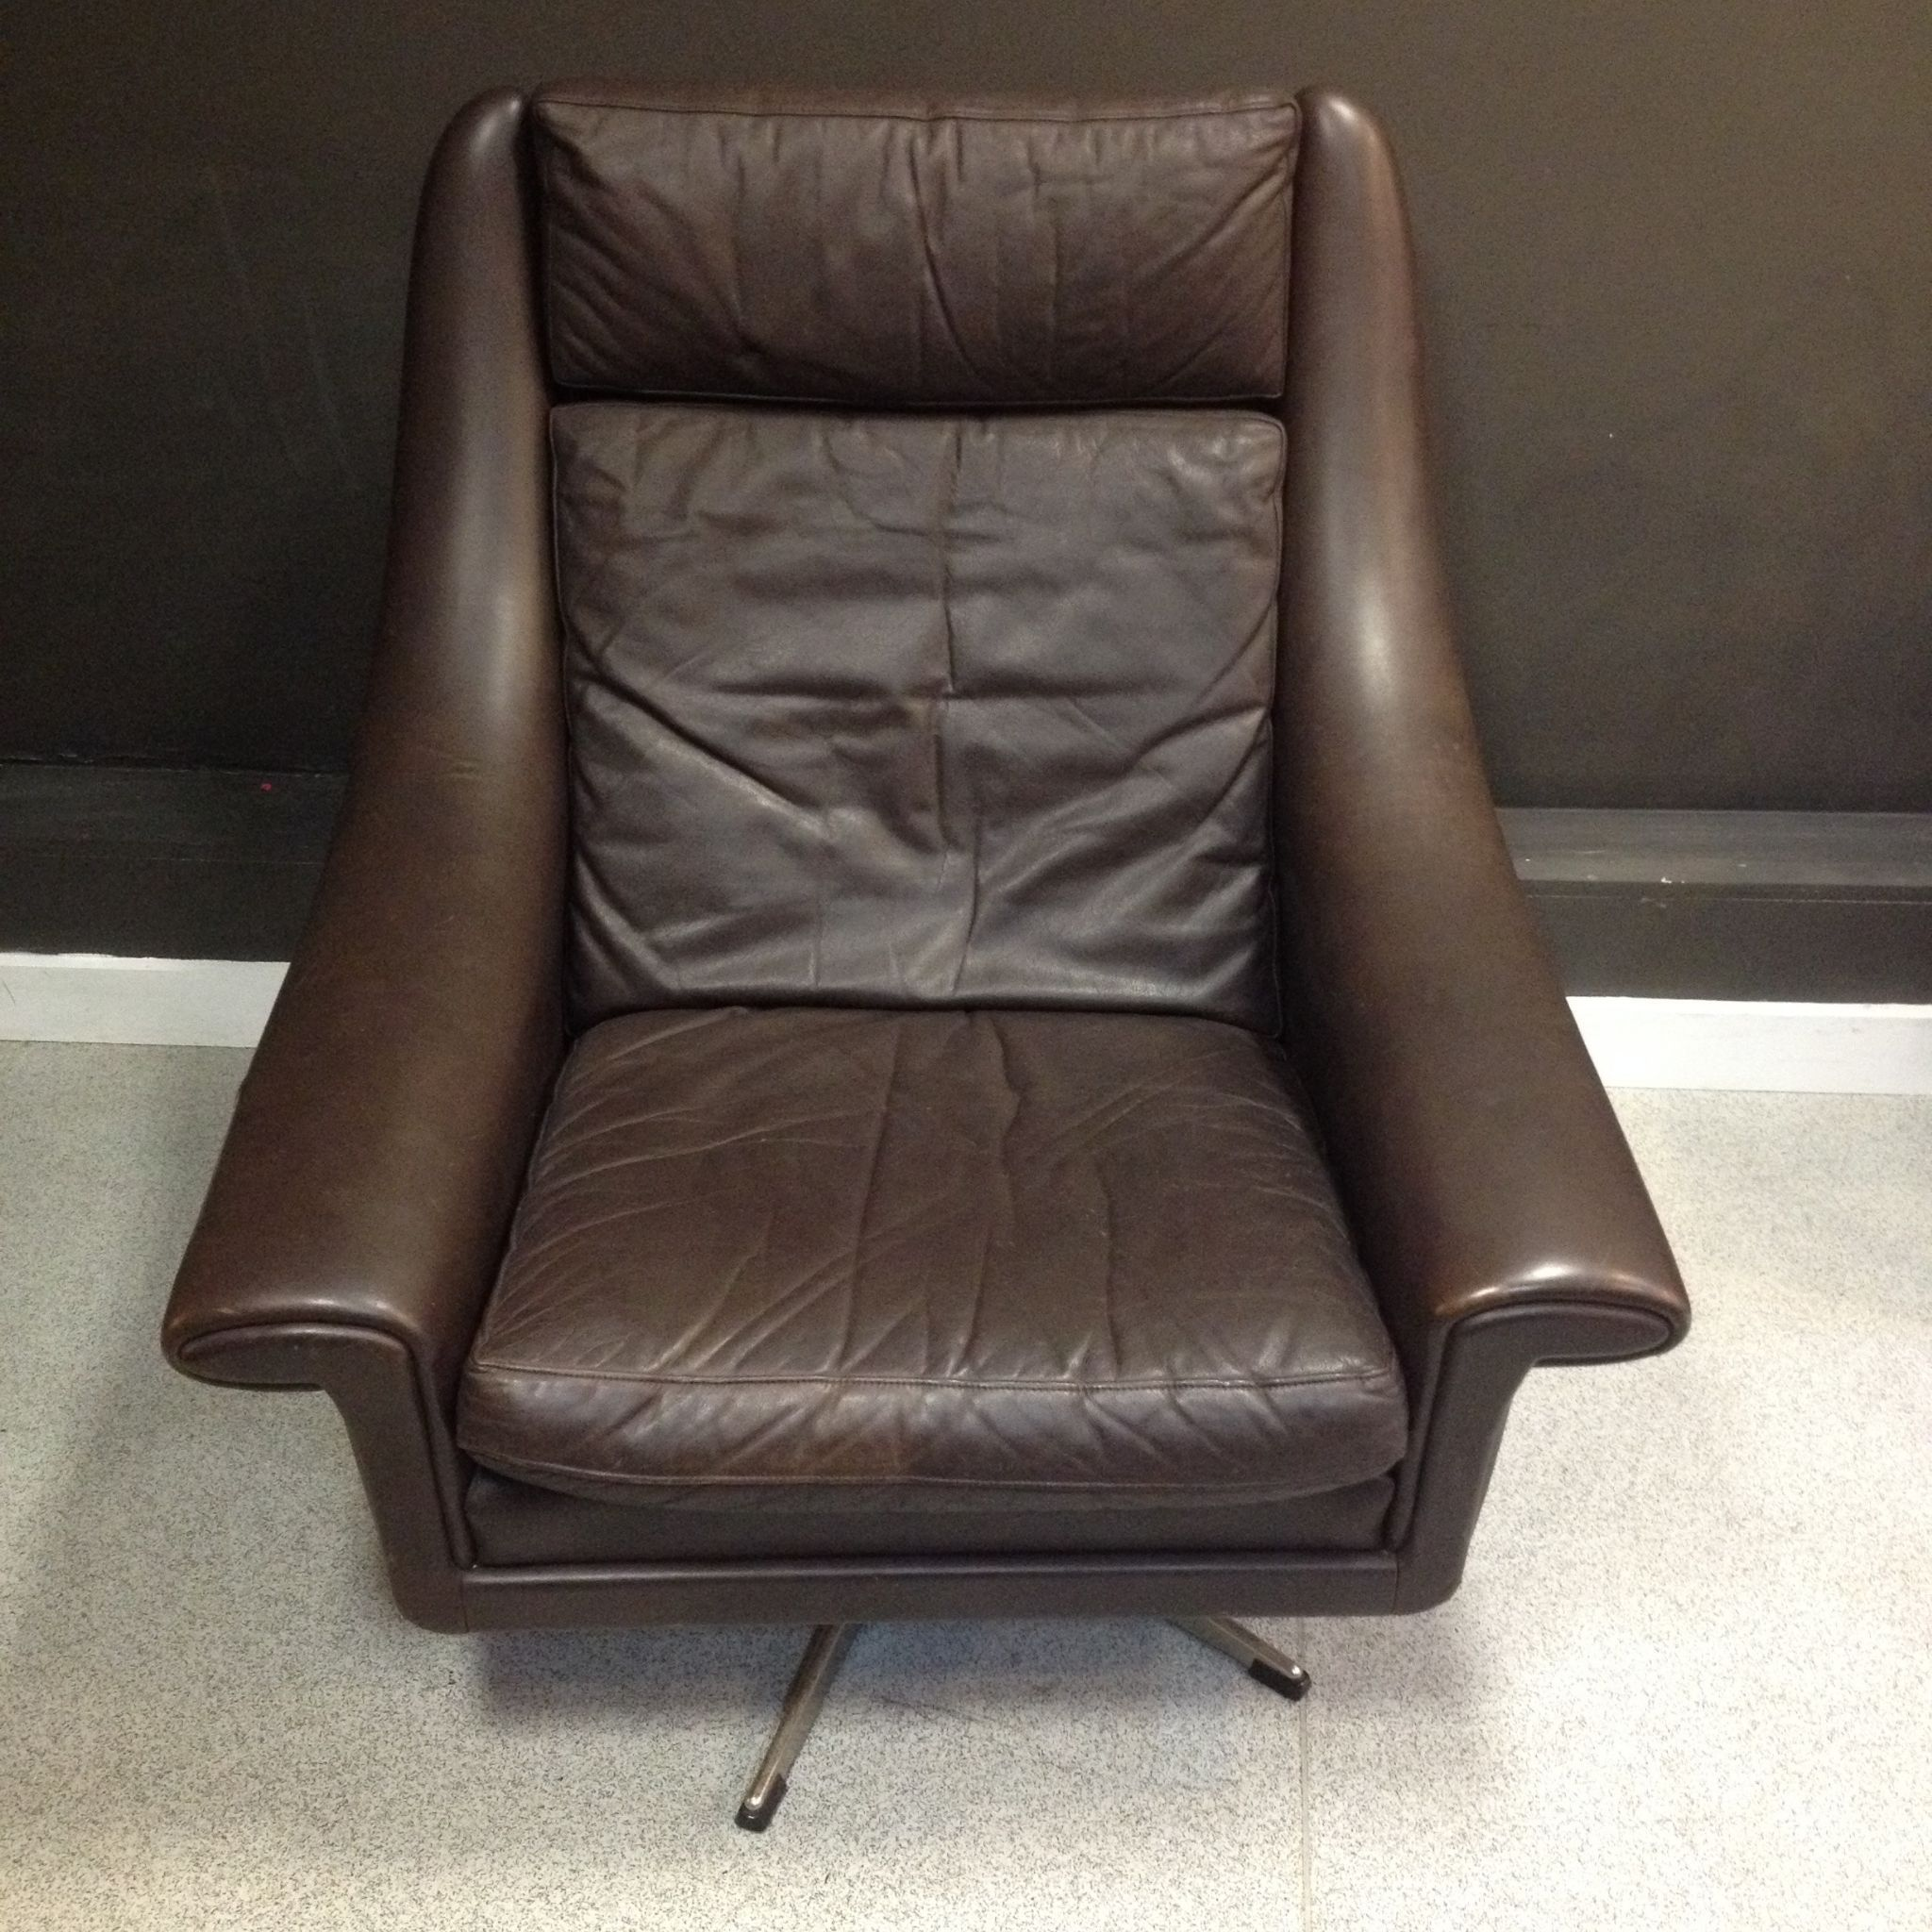 Super Comfy Chair Super Comfy Danish Leather Chair